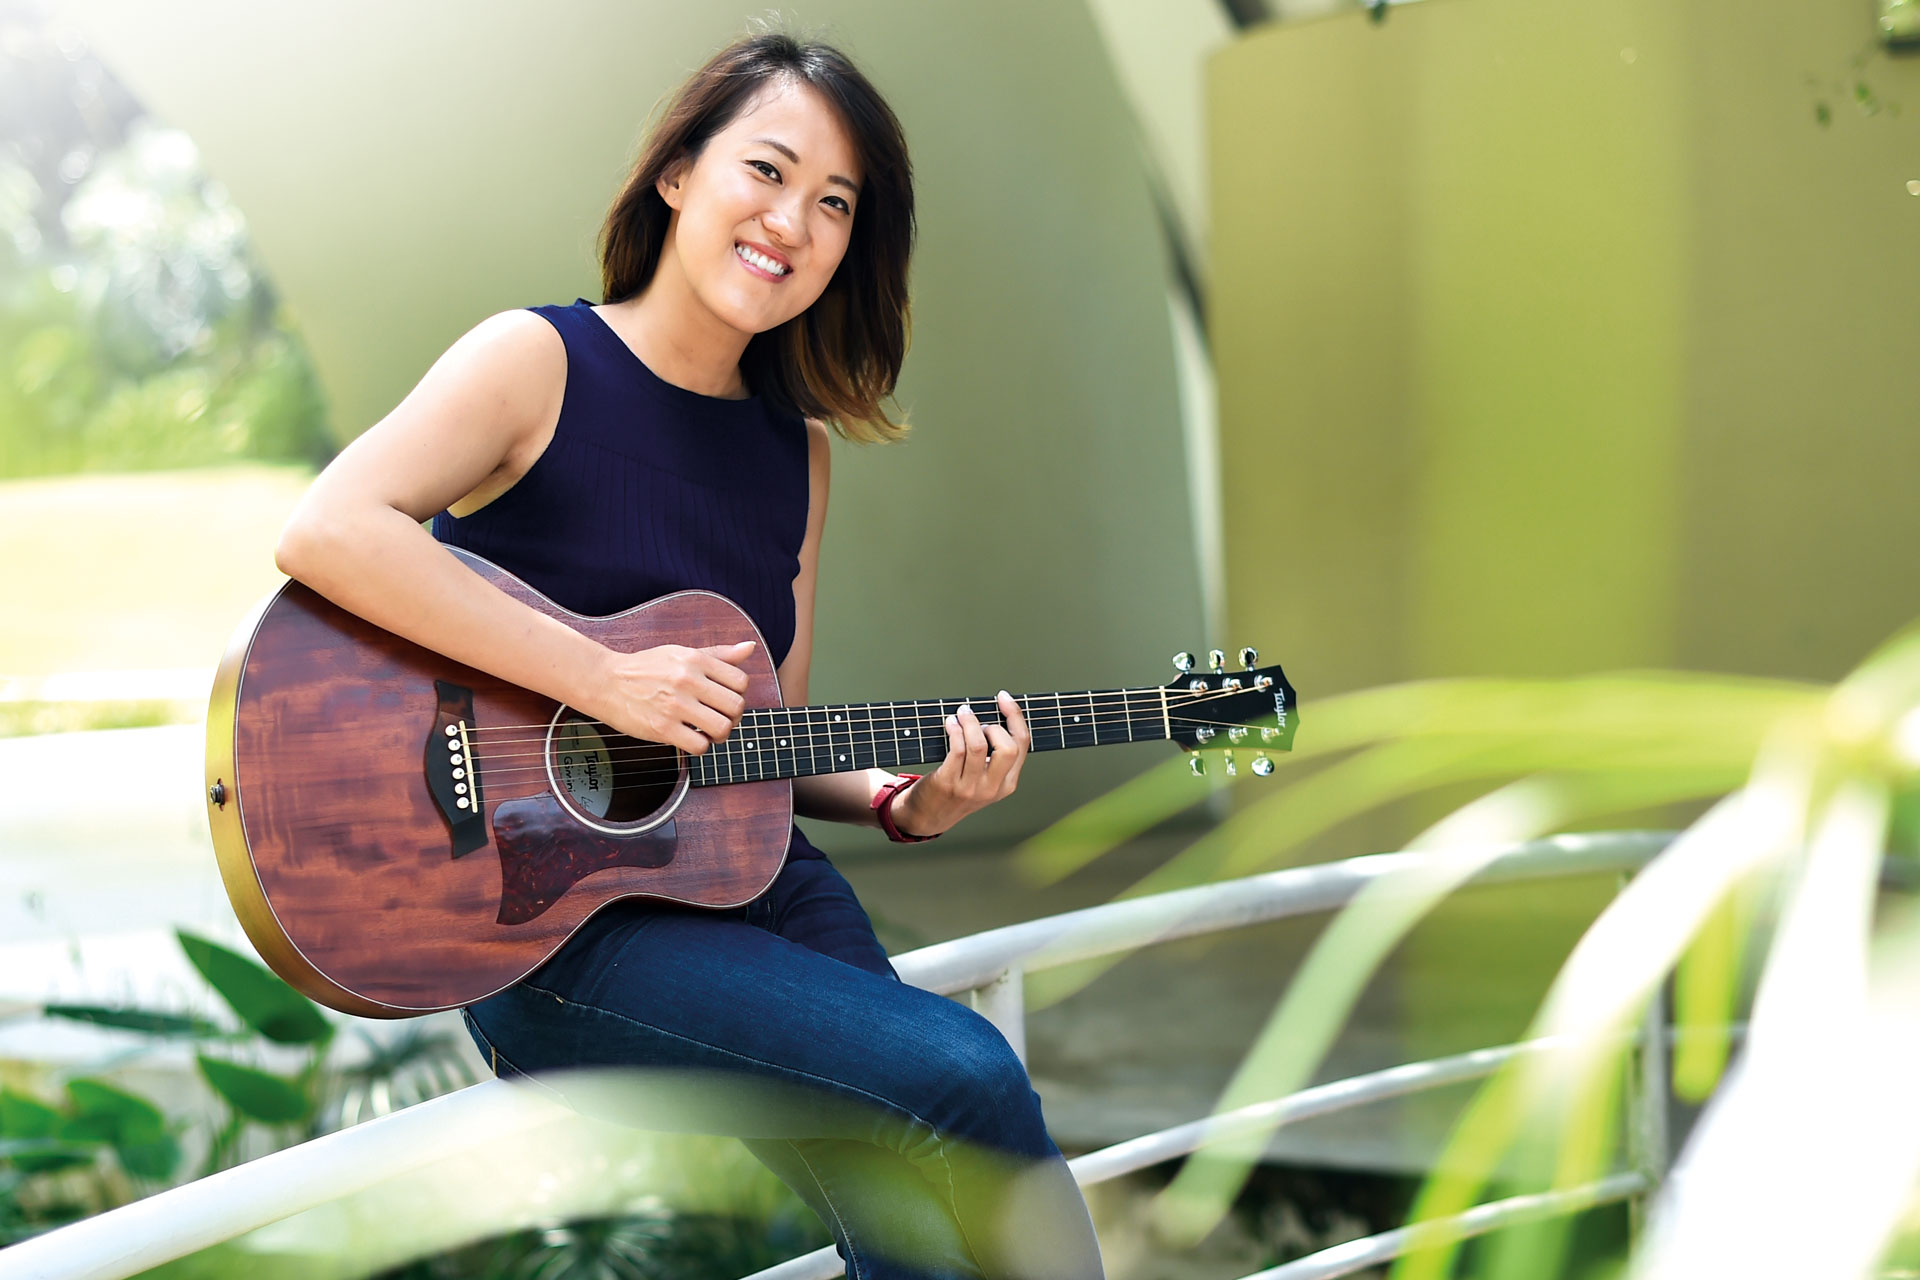 Ms Tan uses music as an avenue to explore her life experiences and to connect with others.